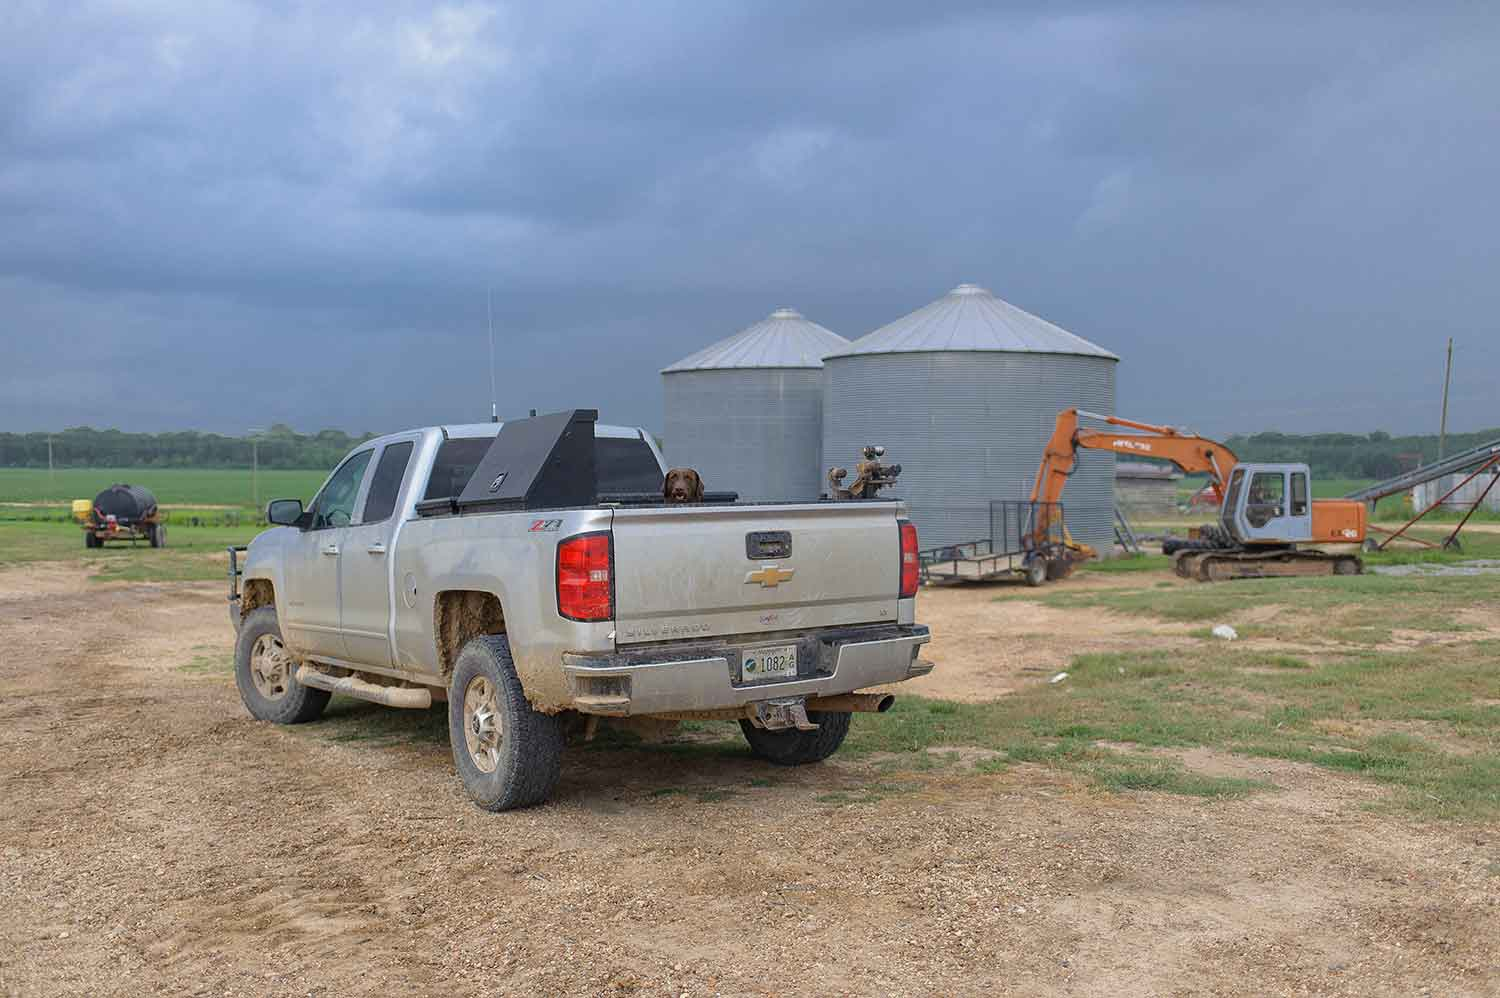 A silver truck with a brown dog peeking its head out of the bed is parked on a dirt lot with farms in the background. Two large, round, metal buildings are just past the truck, and an orange bulldozer is parked in front of one of the metal buildings